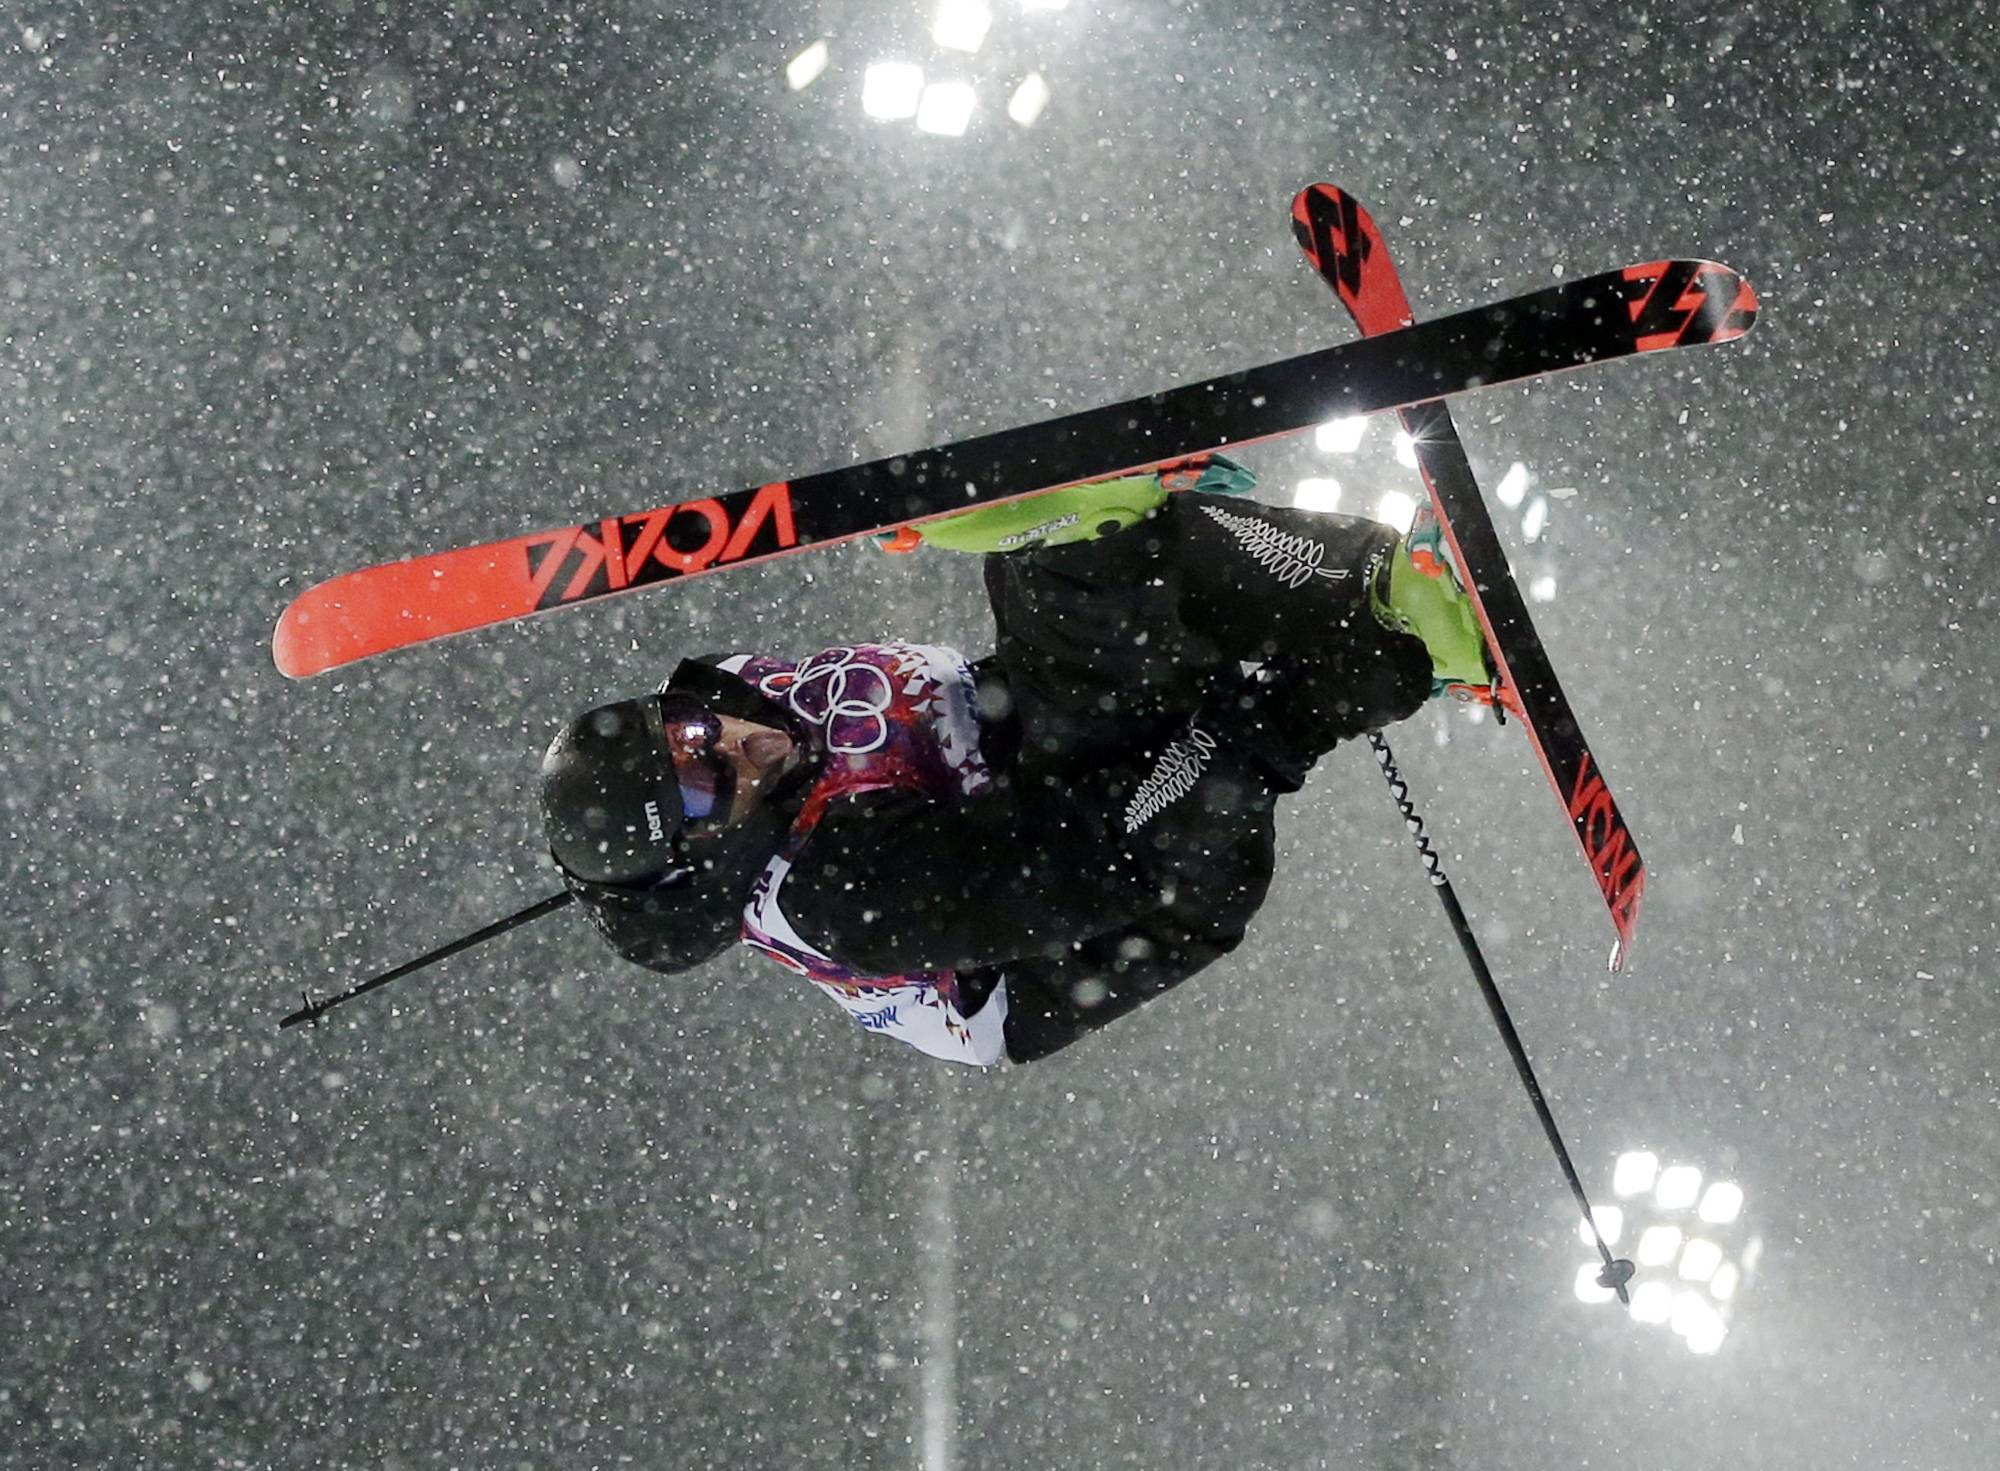 New Zealand's Lyndon Sheehan gets air during the men's ski halfpipe final.